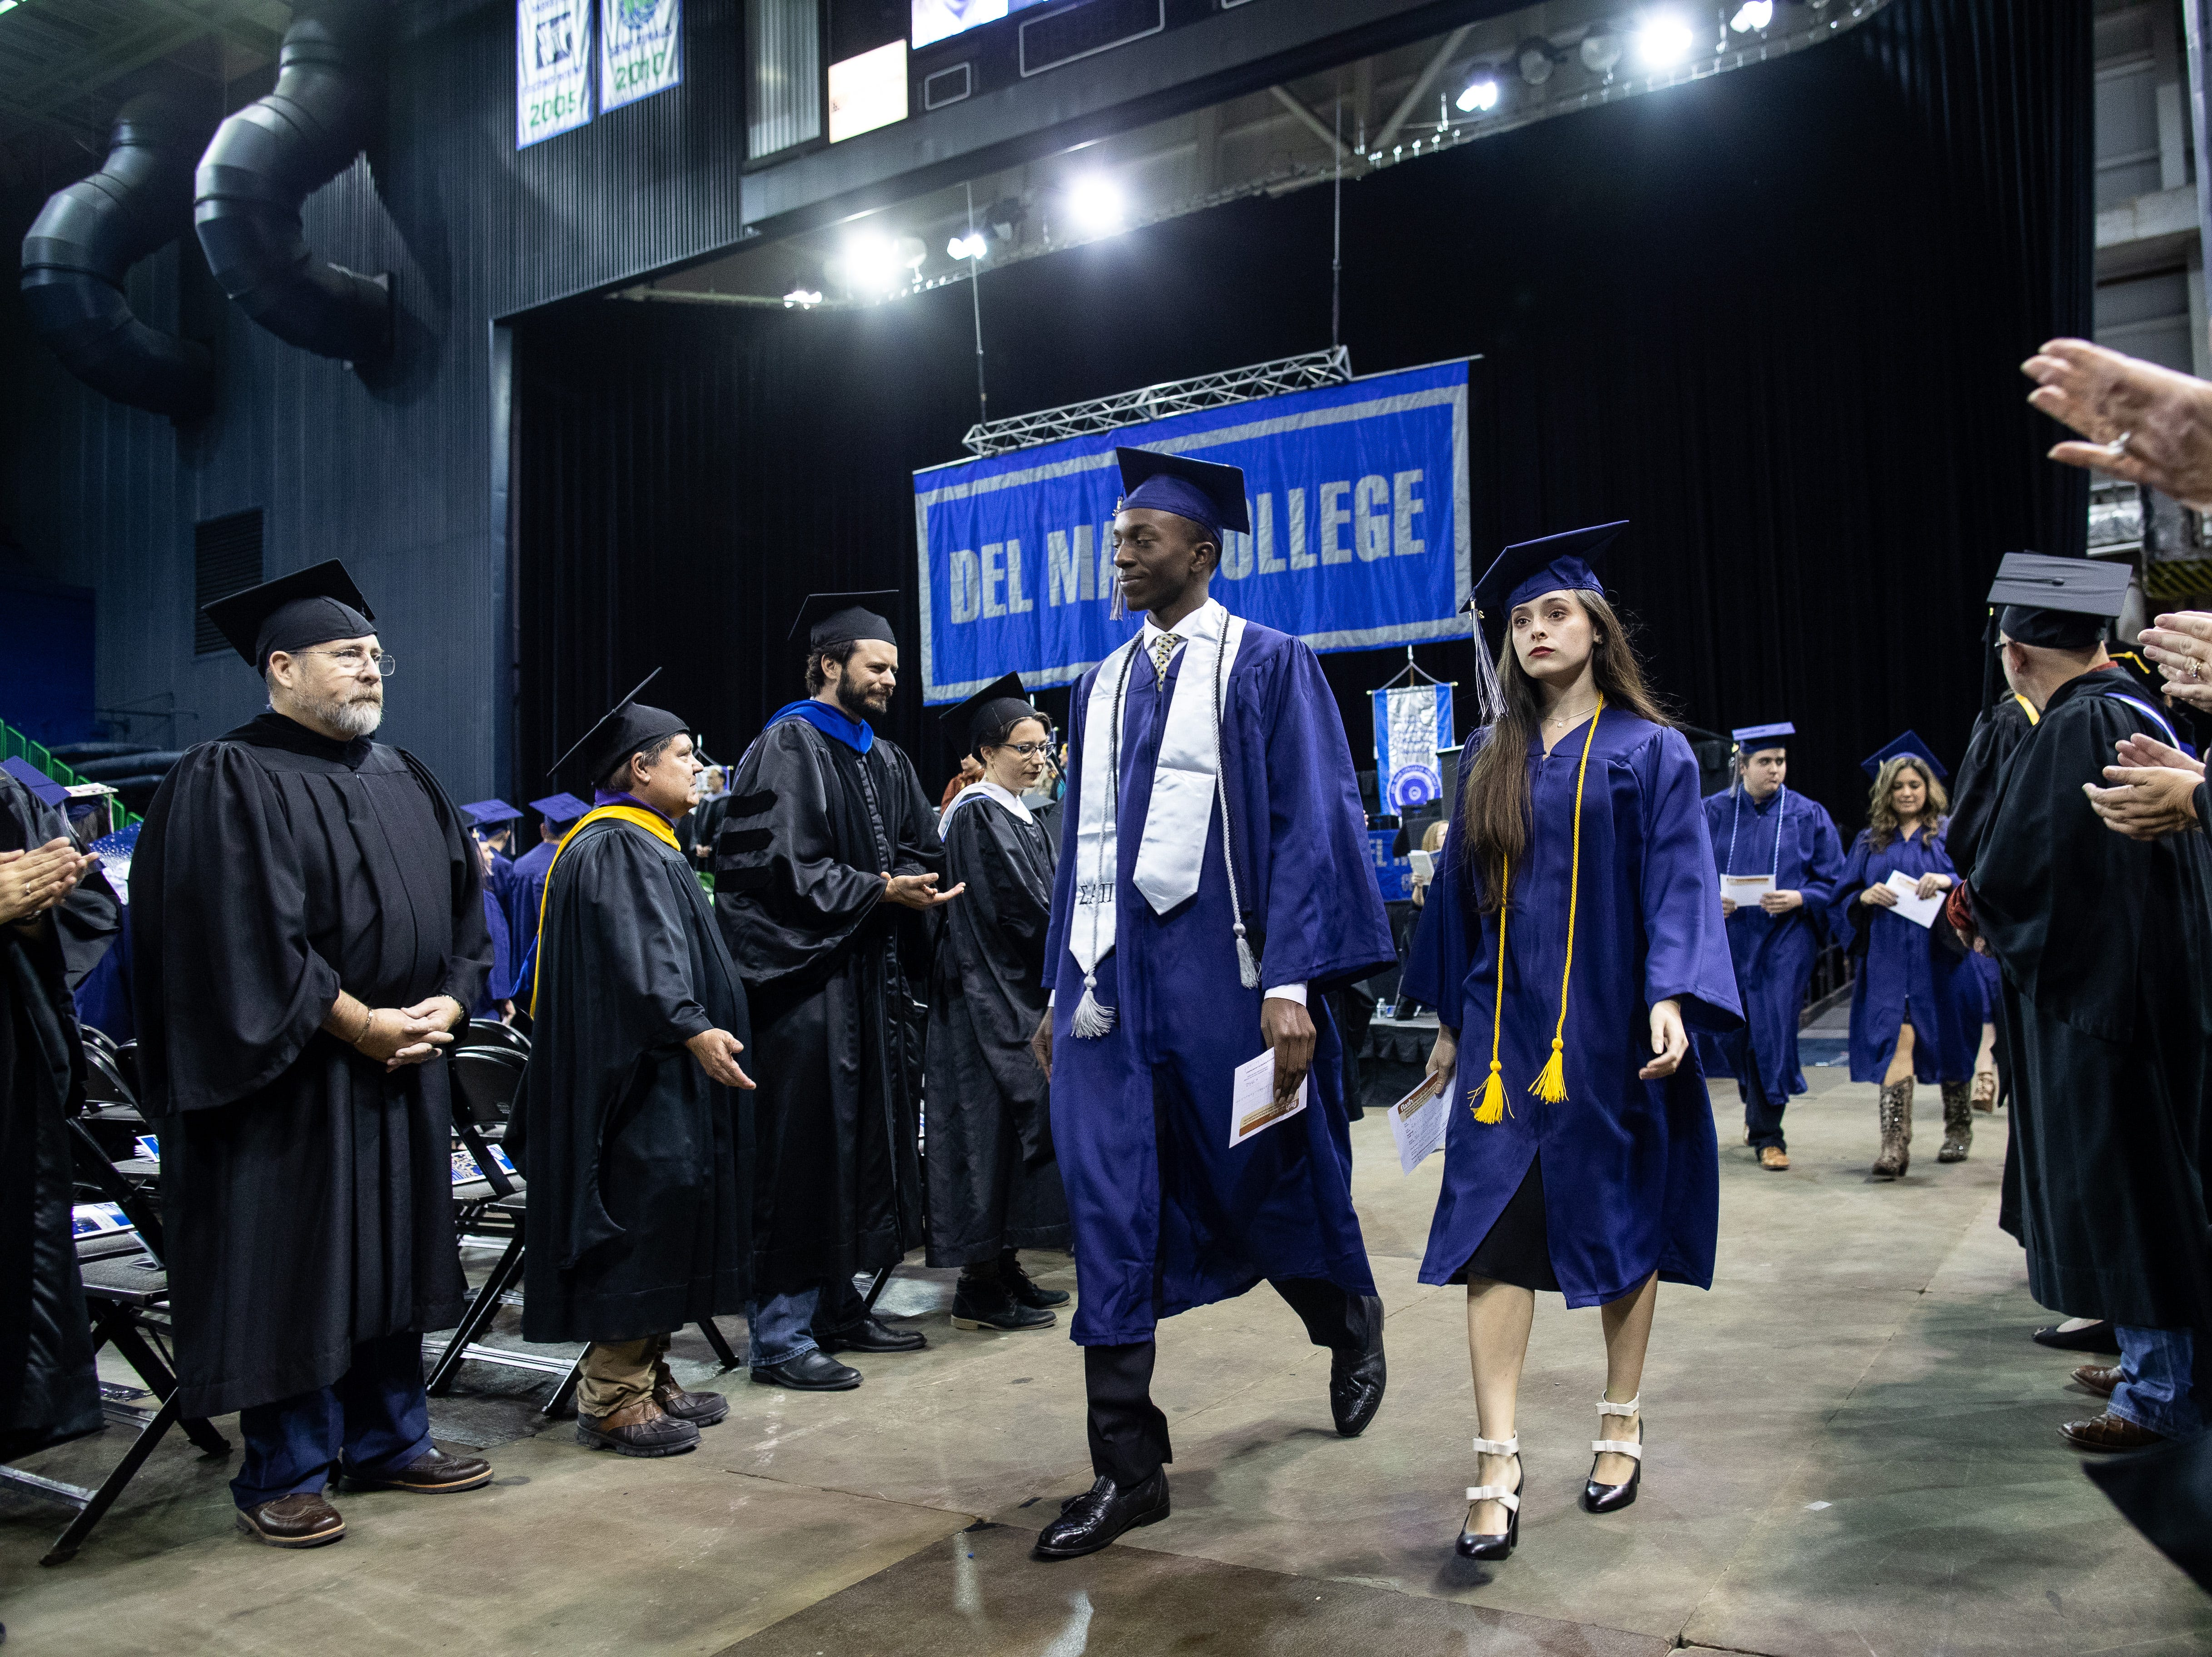 Flour Bluff's High School's Jeremiah Baldwin during the Del Mar's fall commencement ceremony where will receive his associateÕs degree in liberal arts on Thursday, Dec. 13, 2018.